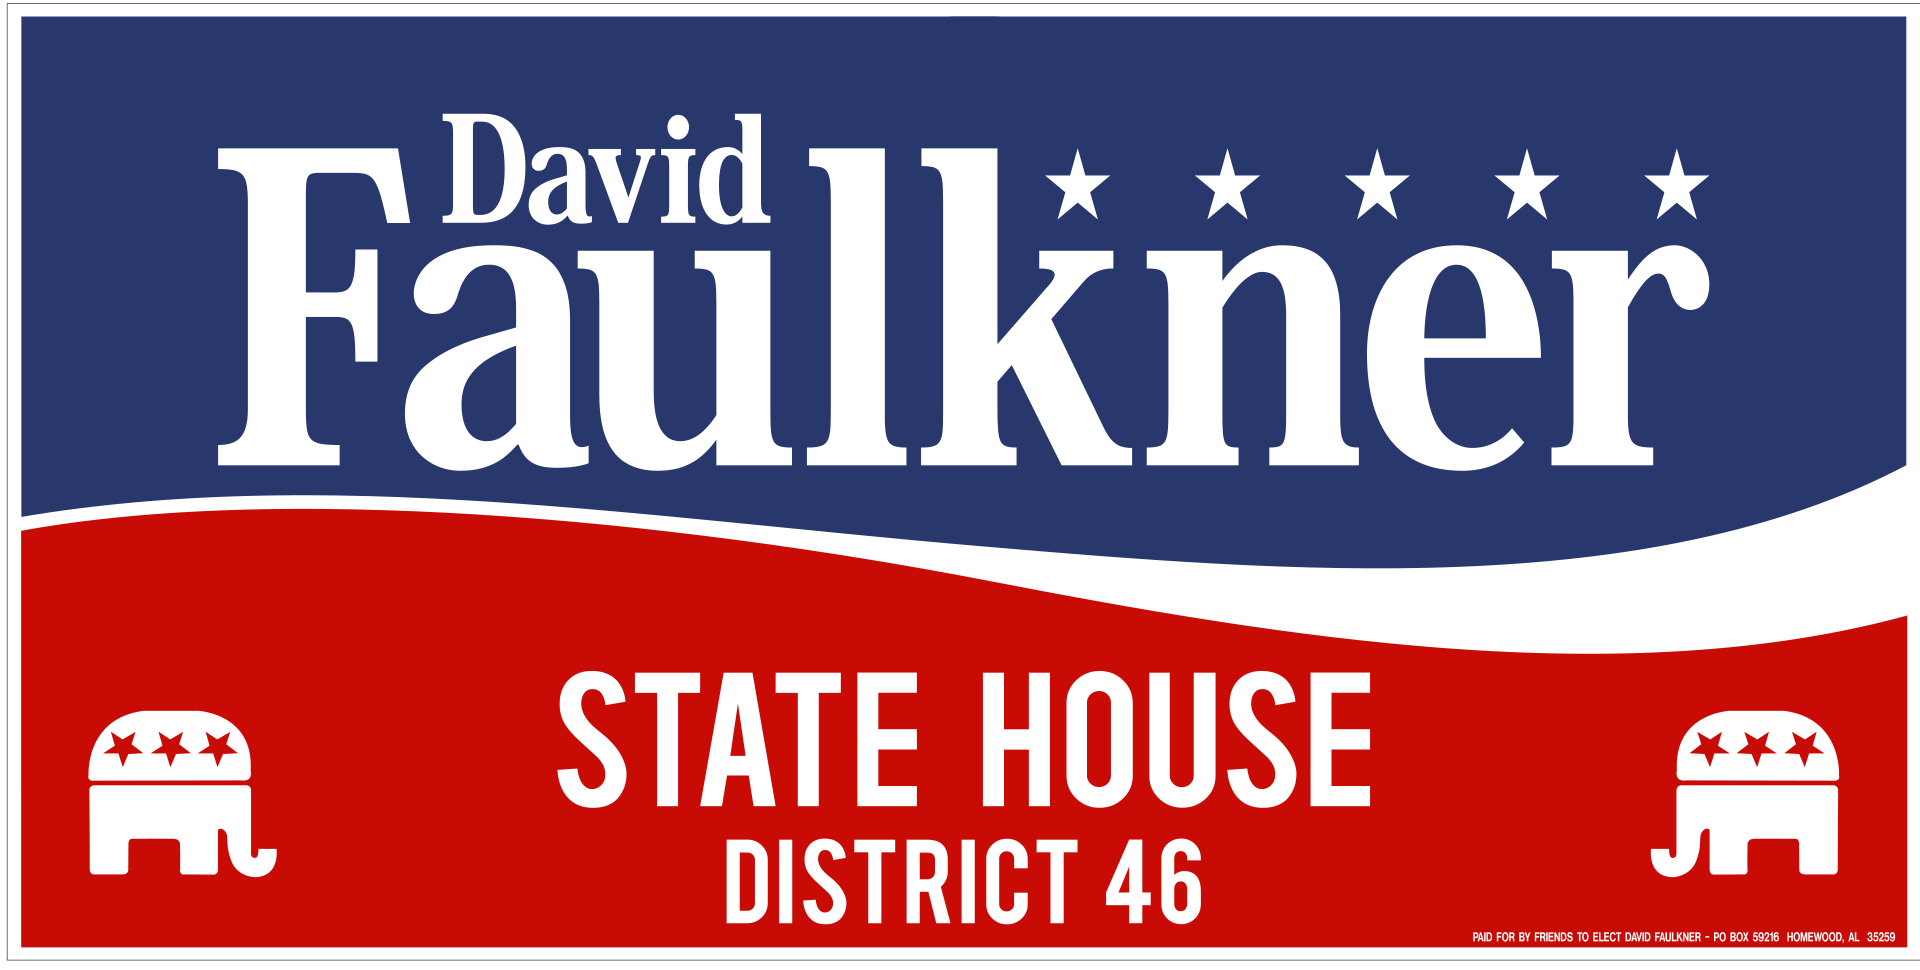 David Faulkner BIG Signs 2014.png